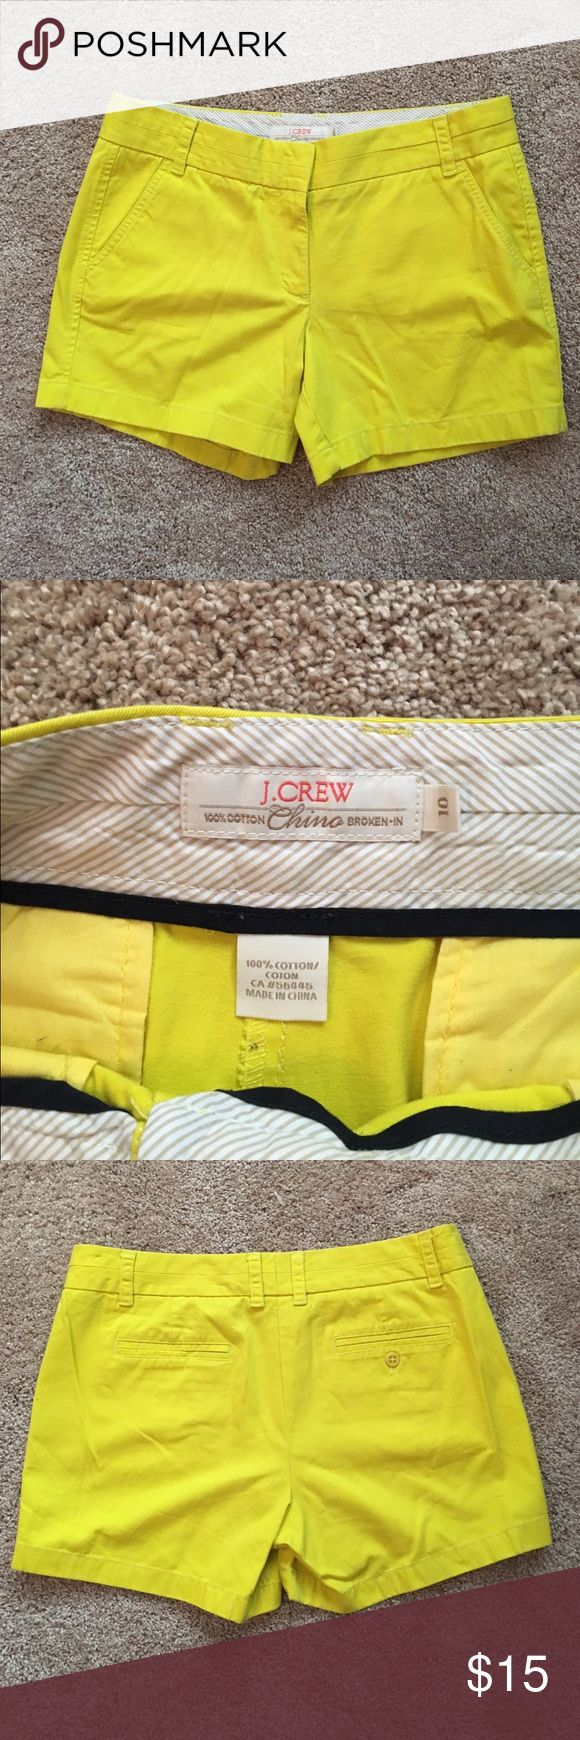 J. Crew Chino Shorts Neon Yellow J. Crew Broken-In Chino Shorts in good condition! Measurements in pictures! J. Crew Shorts